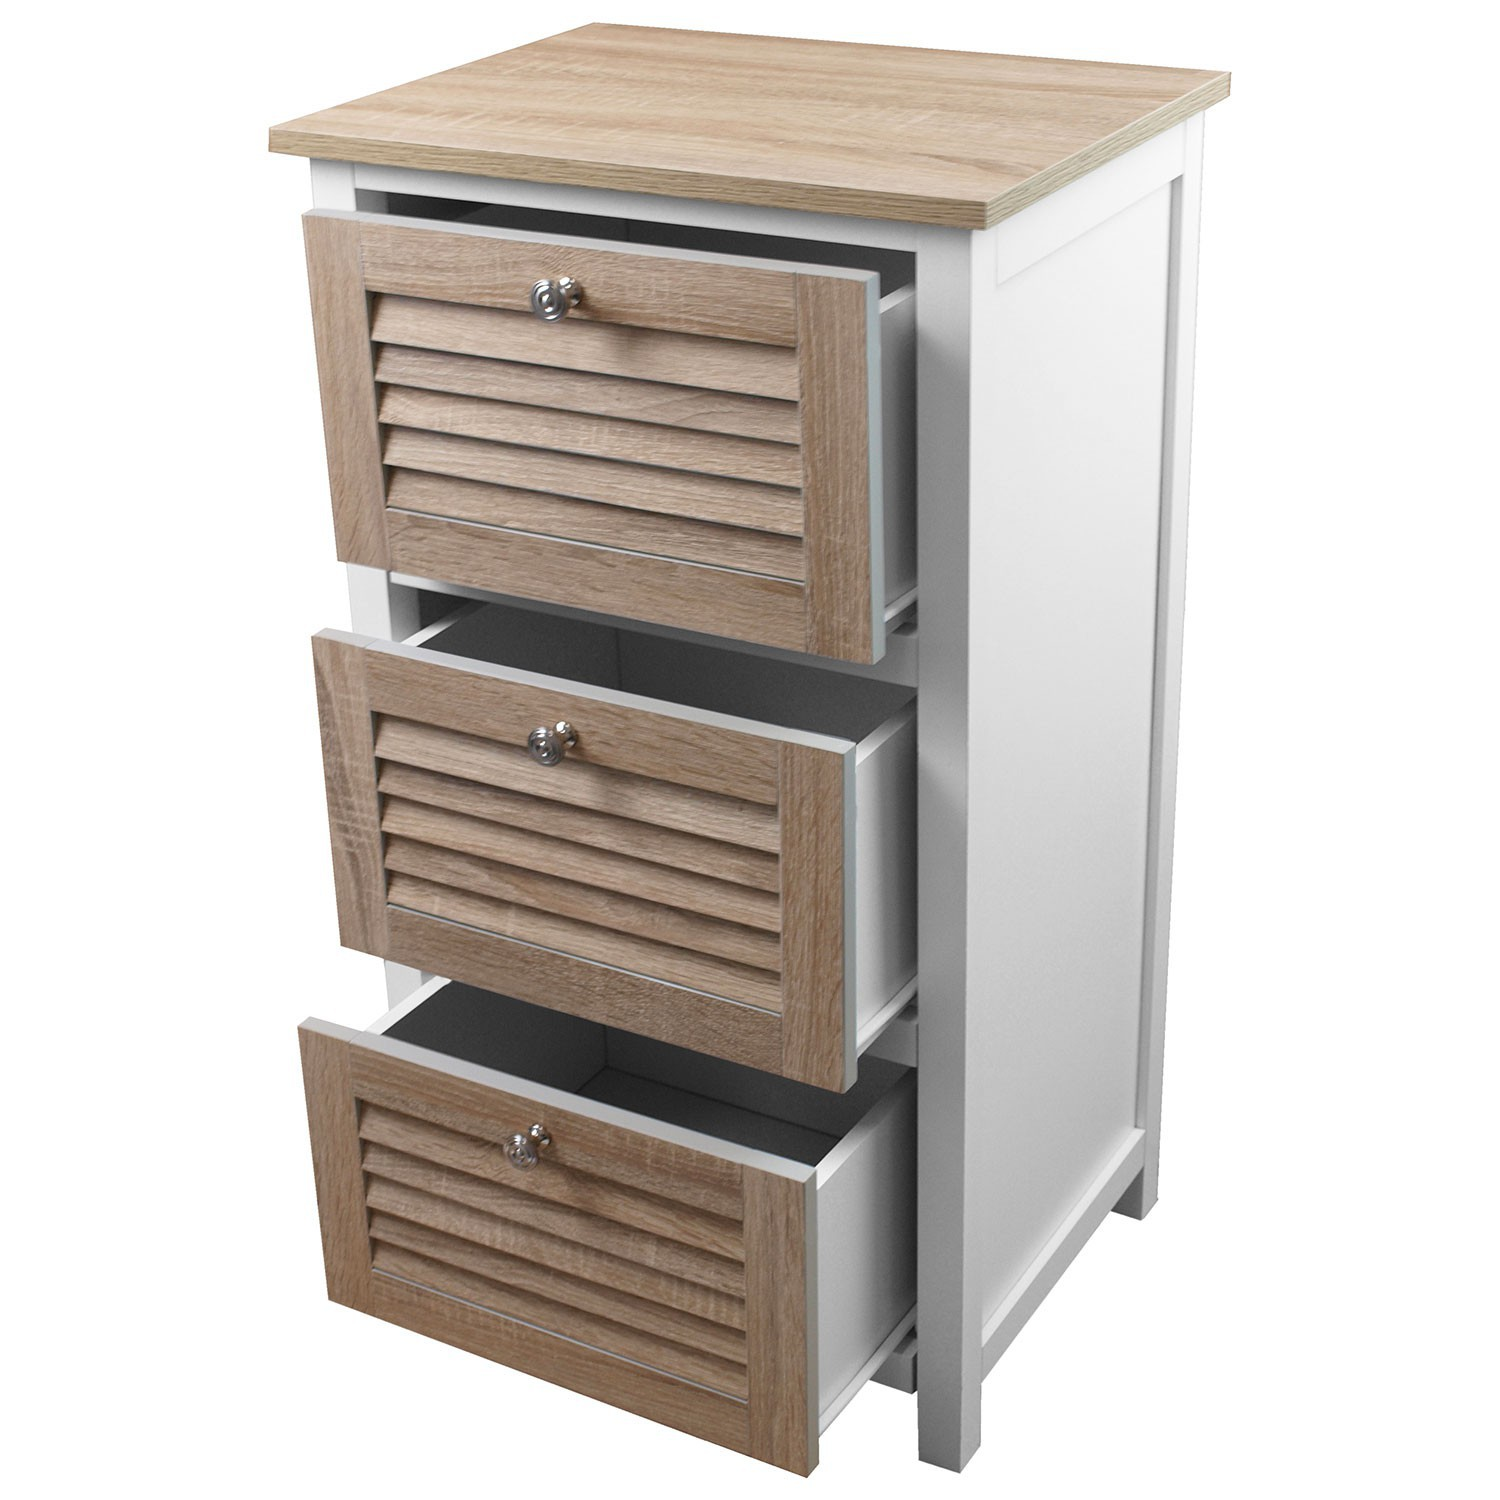 kommode schrank mit 3 schubladen 45x35x82cm badschrank. Black Bedroom Furniture Sets. Home Design Ideas